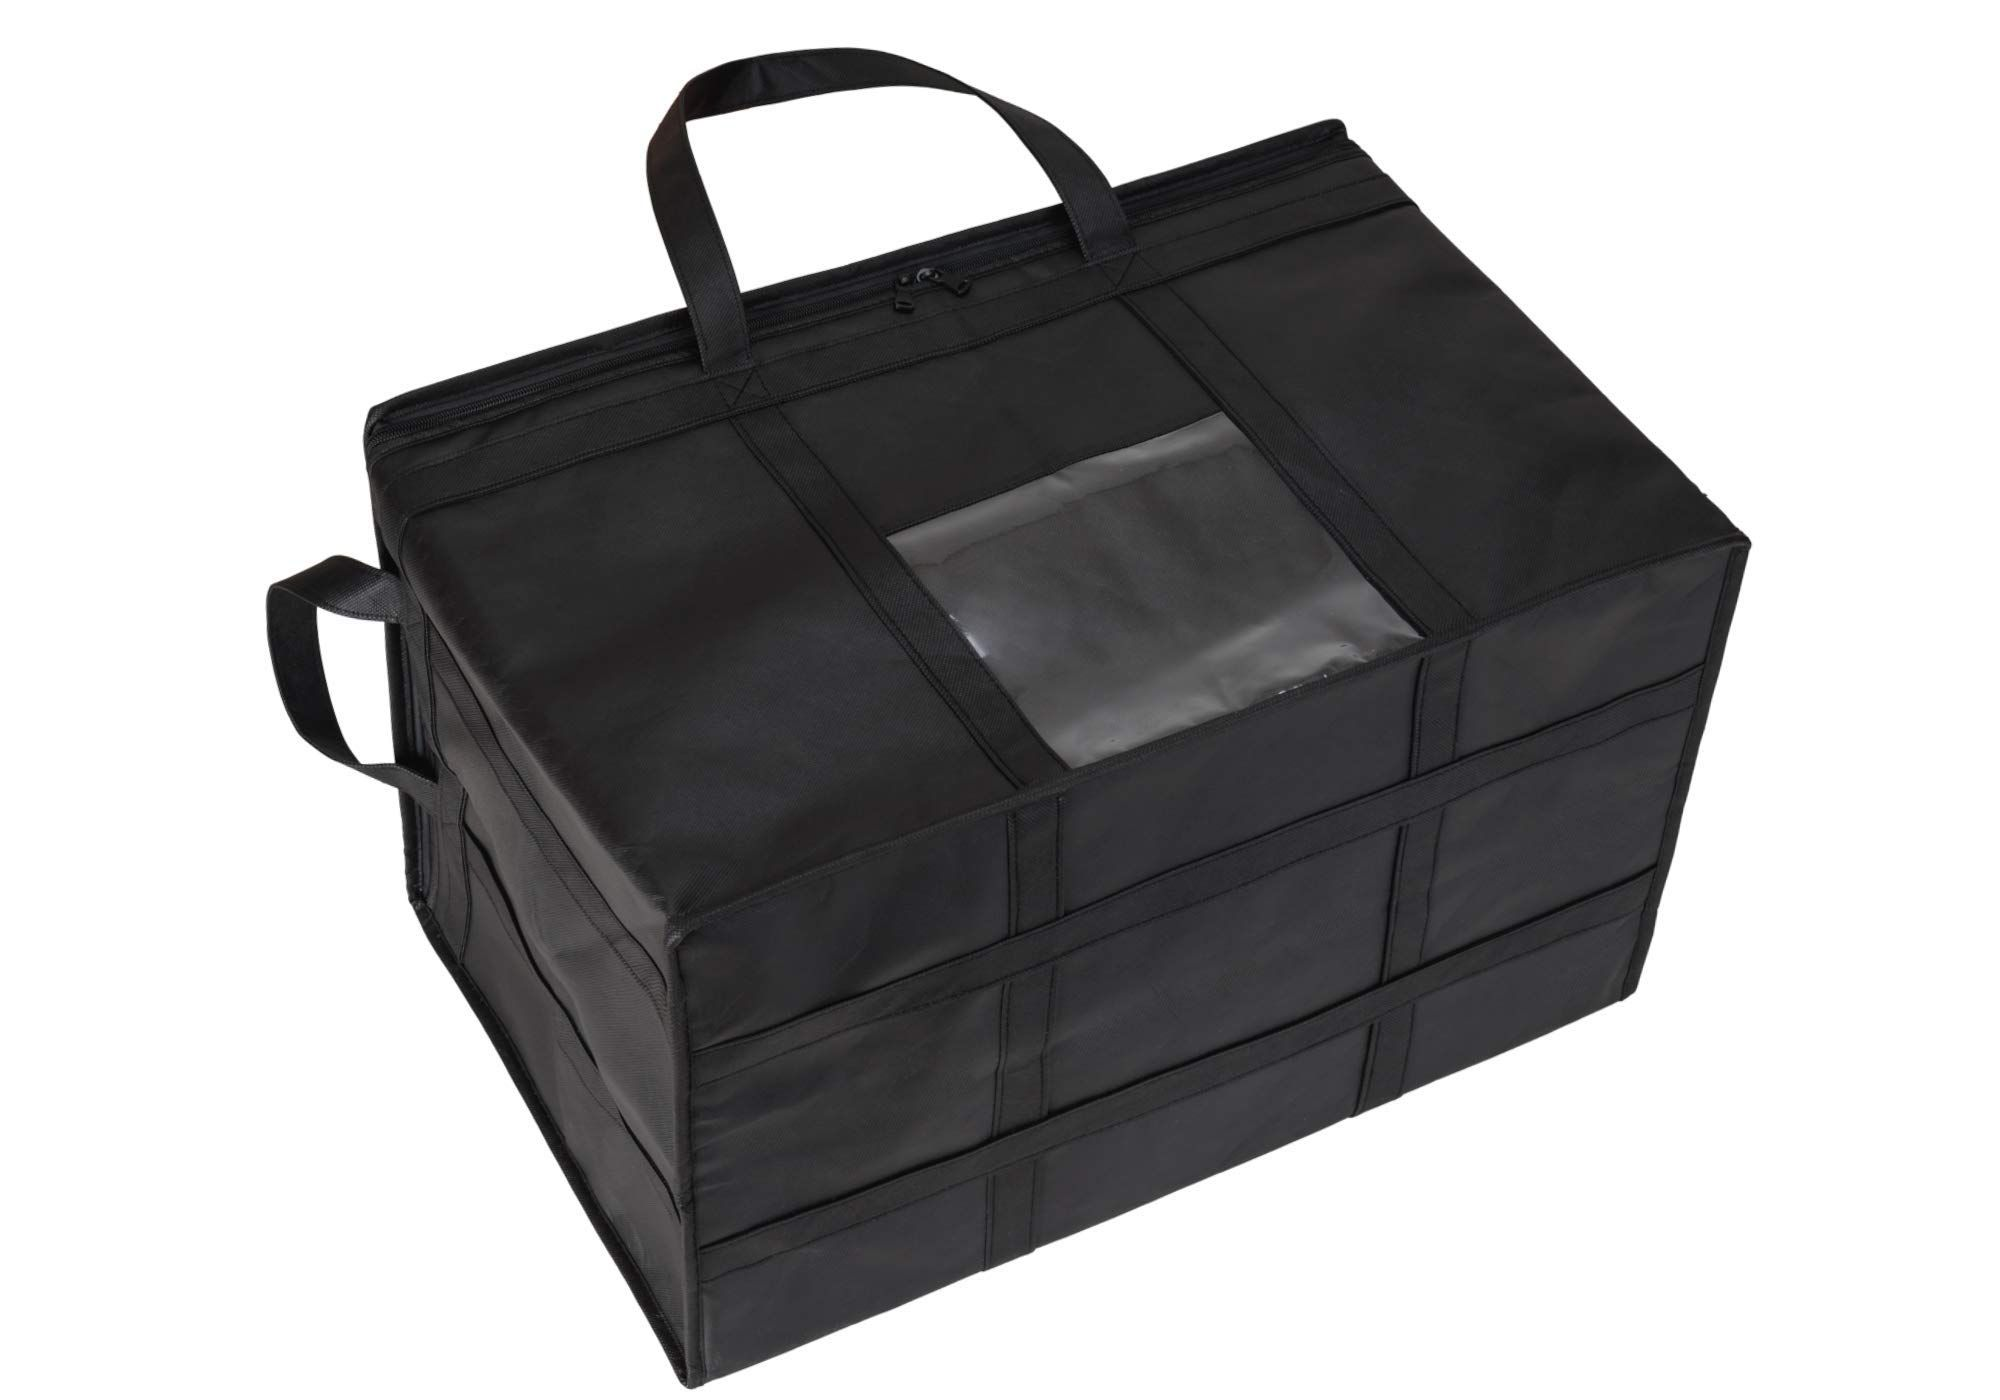 Nz home xxxl food delivery bag hot and cold insulated soft